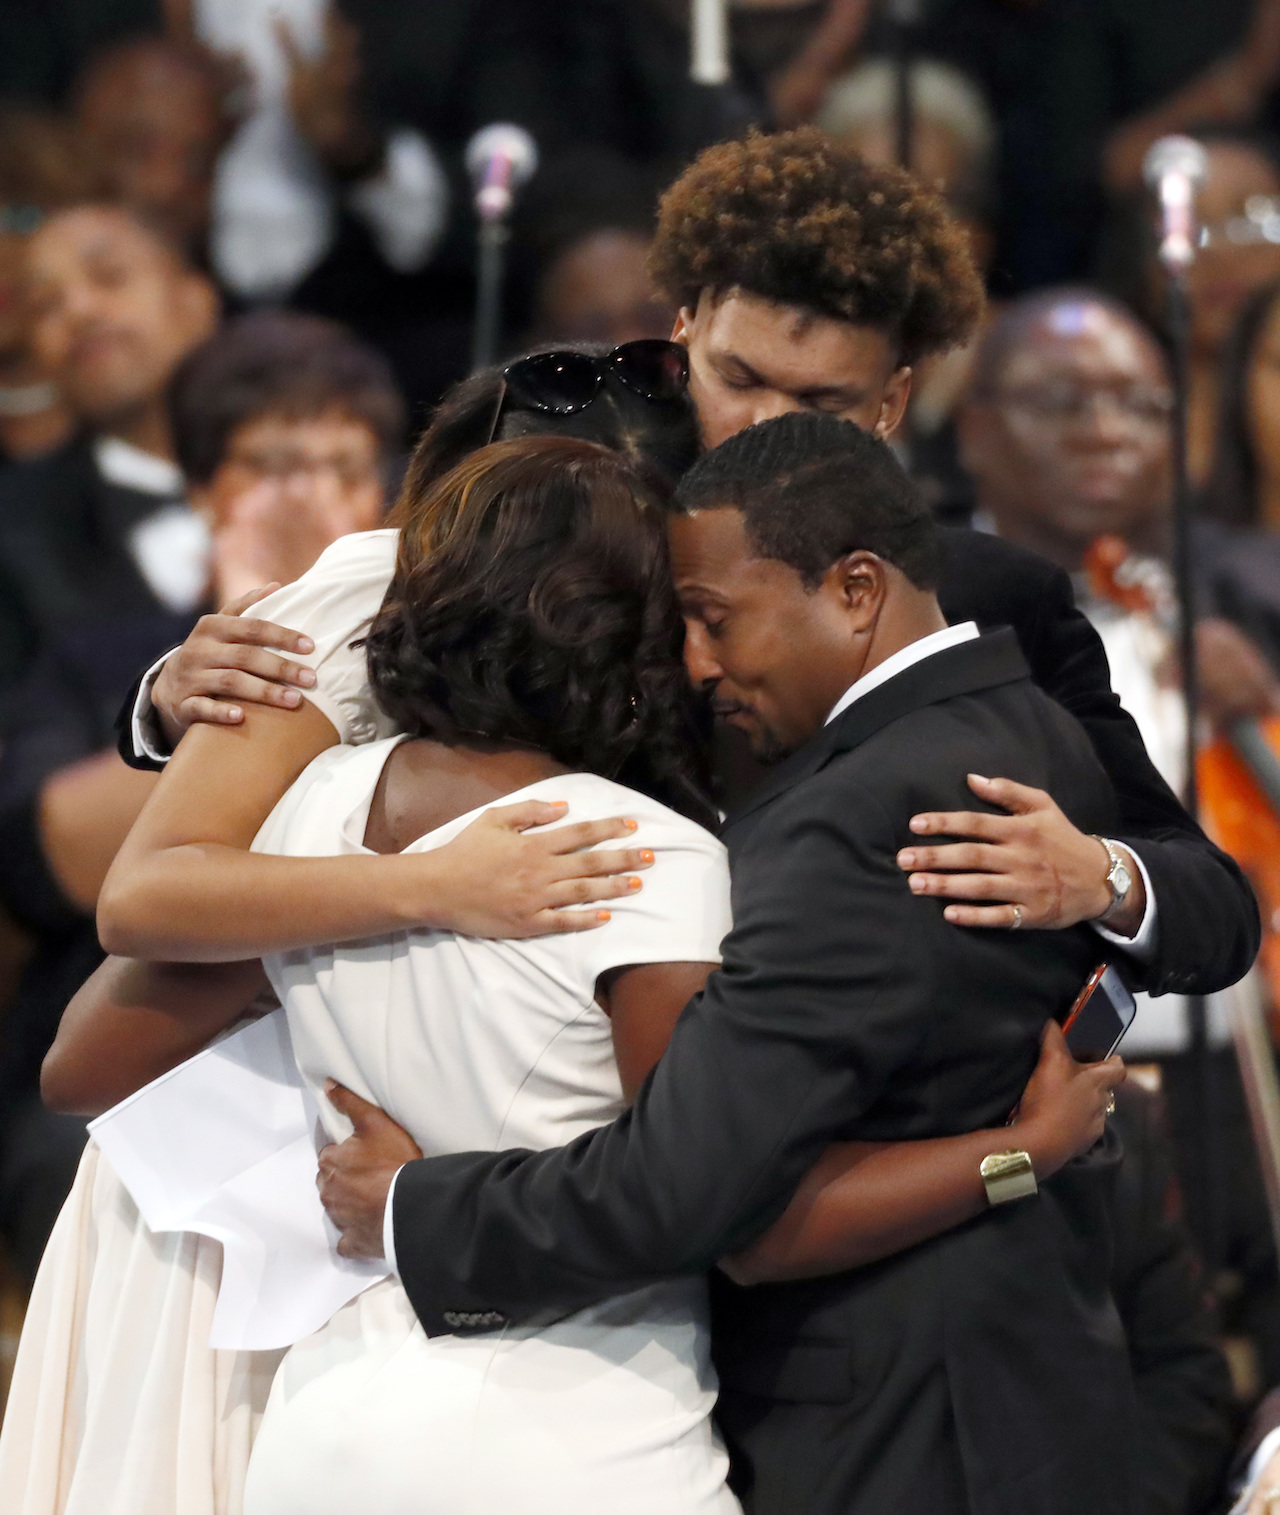 "<div class=""meta image-caption""><div class=""origin-logo origin-image ap""><span>AP</span></div><span class=""caption-text"">Family members hug during the funeral service for Aretha Franklin at Greater Grace Temple, Friday, Aug. 31, 2018, in Detroit. (AP Photo/Paul Sancya)</span></div>"